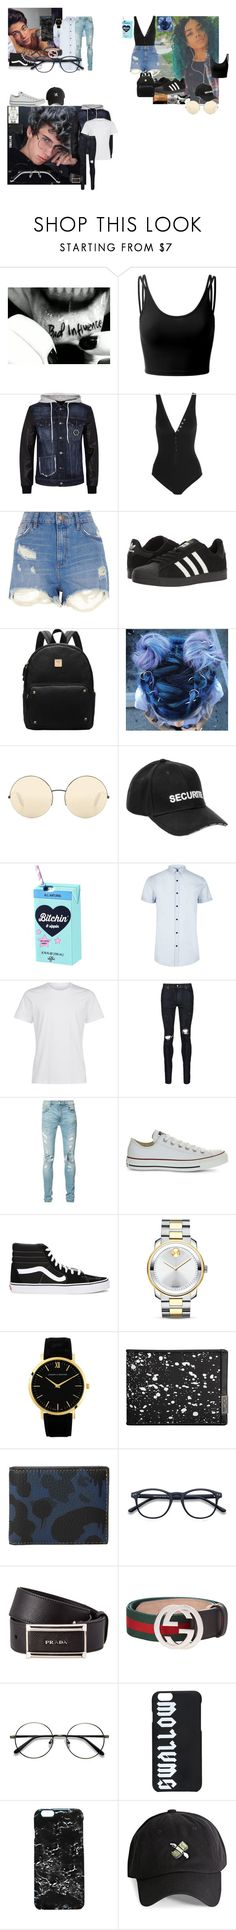 """Untitled #715"" by teylorann on Polyvore featuring Doublju, Philipp Plein, Eres, River Island, adidas, Victoria Beckham, Vetements, AMIRI, Converse and Vans"